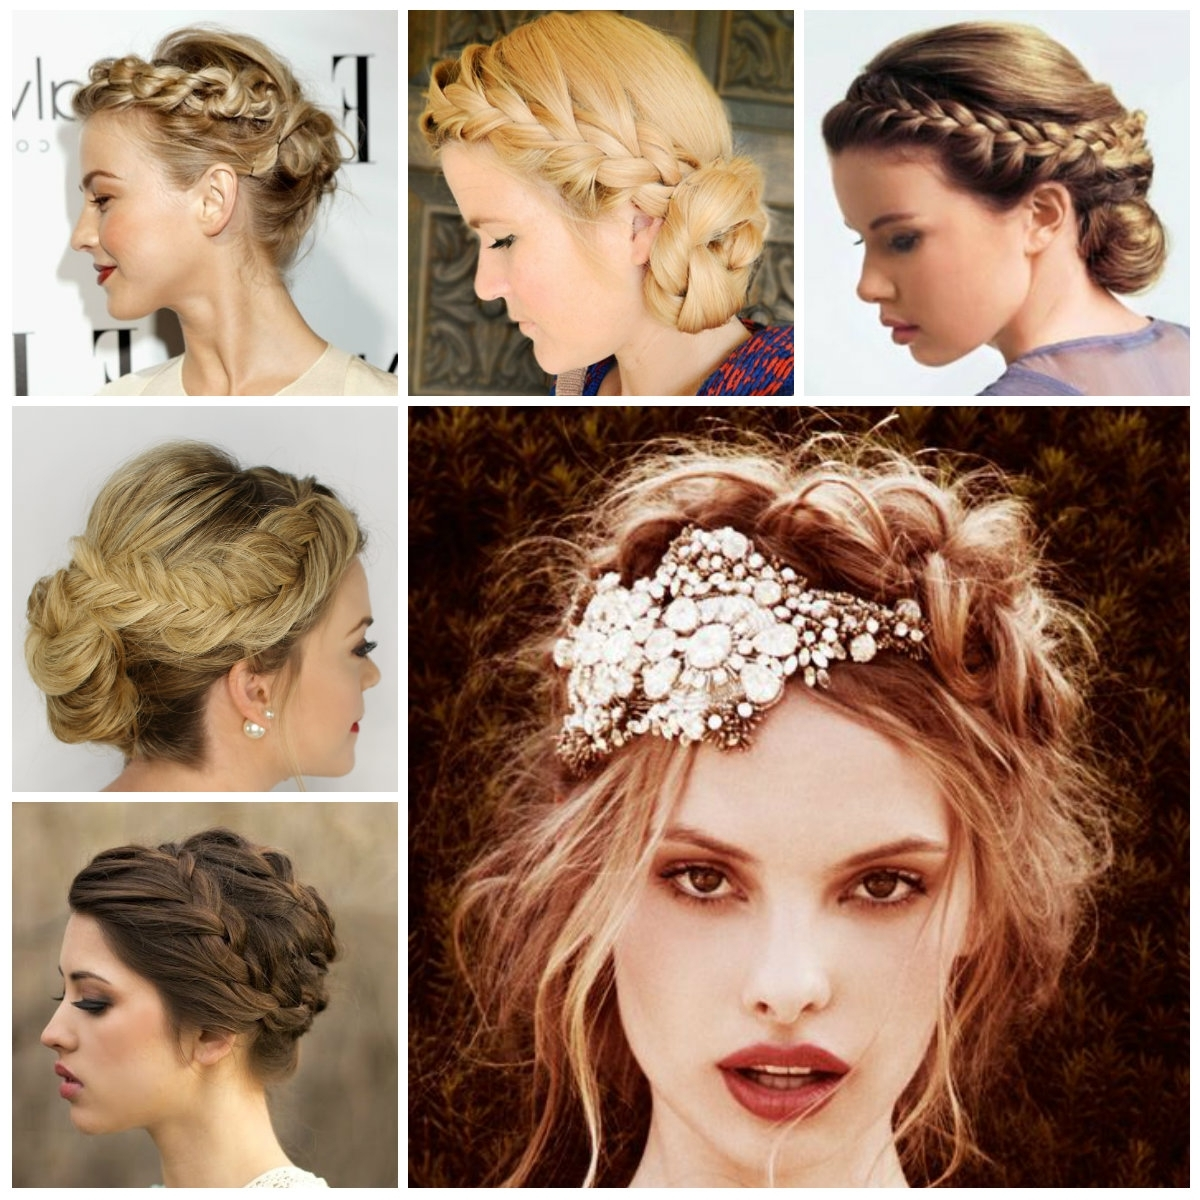 Braided Updo Hairstyle Ideas | New Haircuts To Try For 2018 With Regard To New Updo Hairstyles (View 7 of 15)